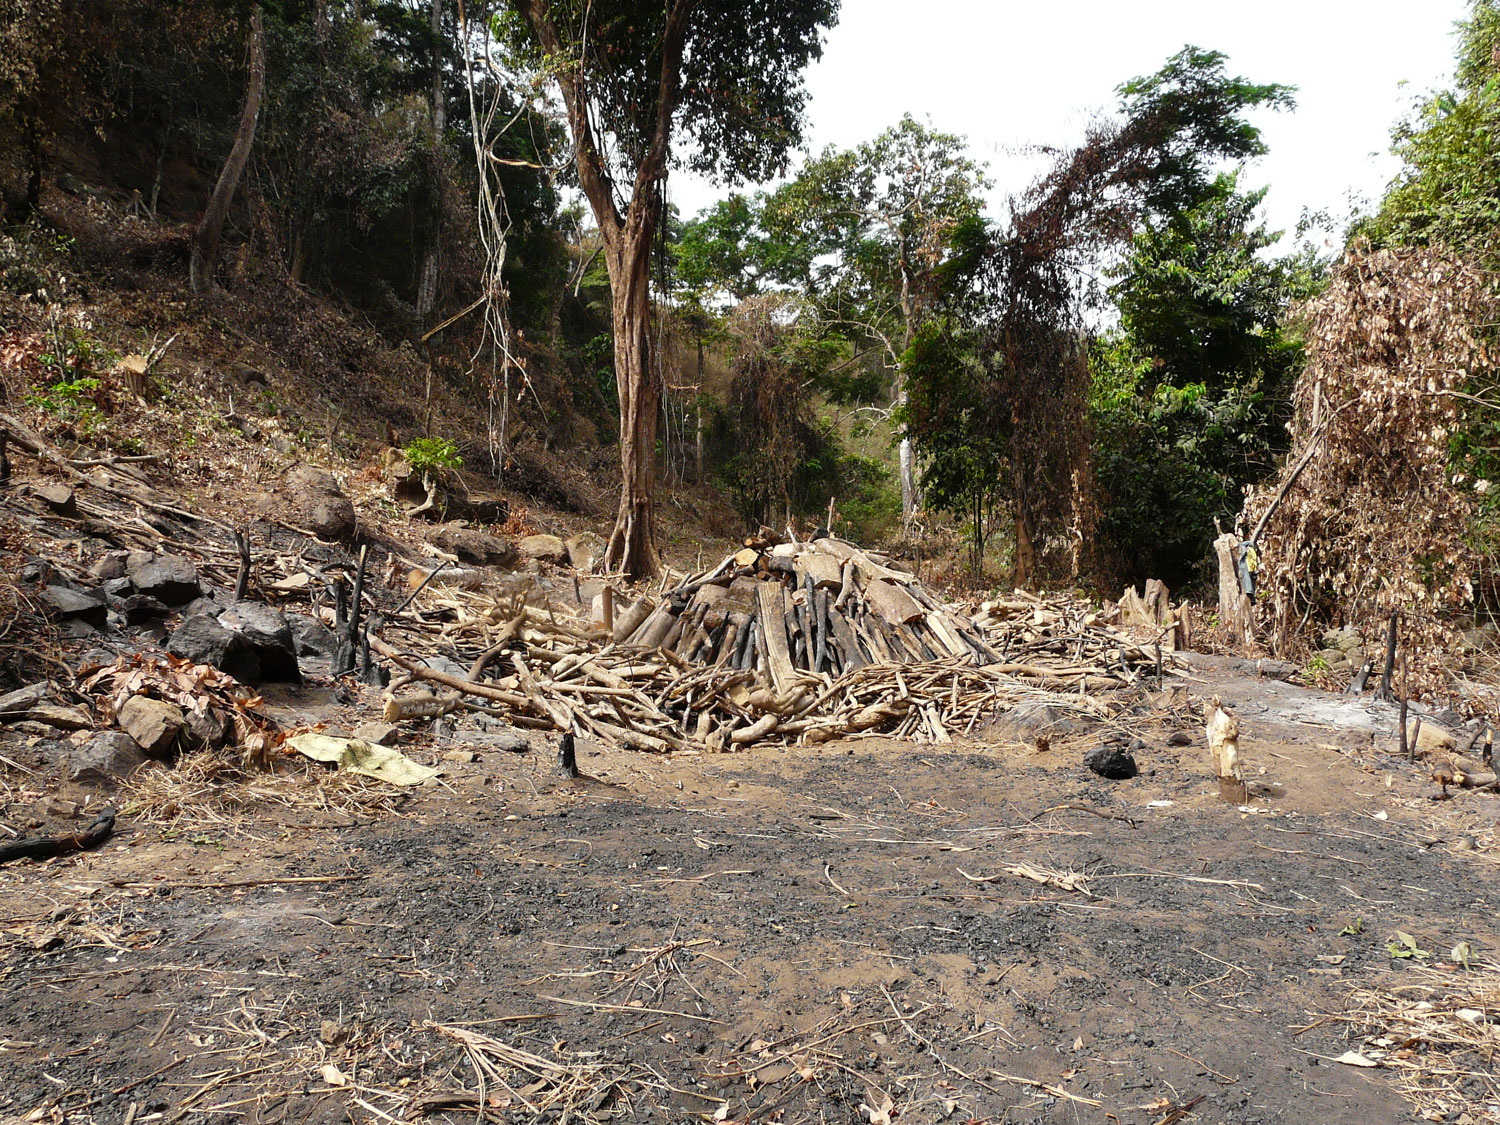 Area of forest cleared with piles of wood and charcoal